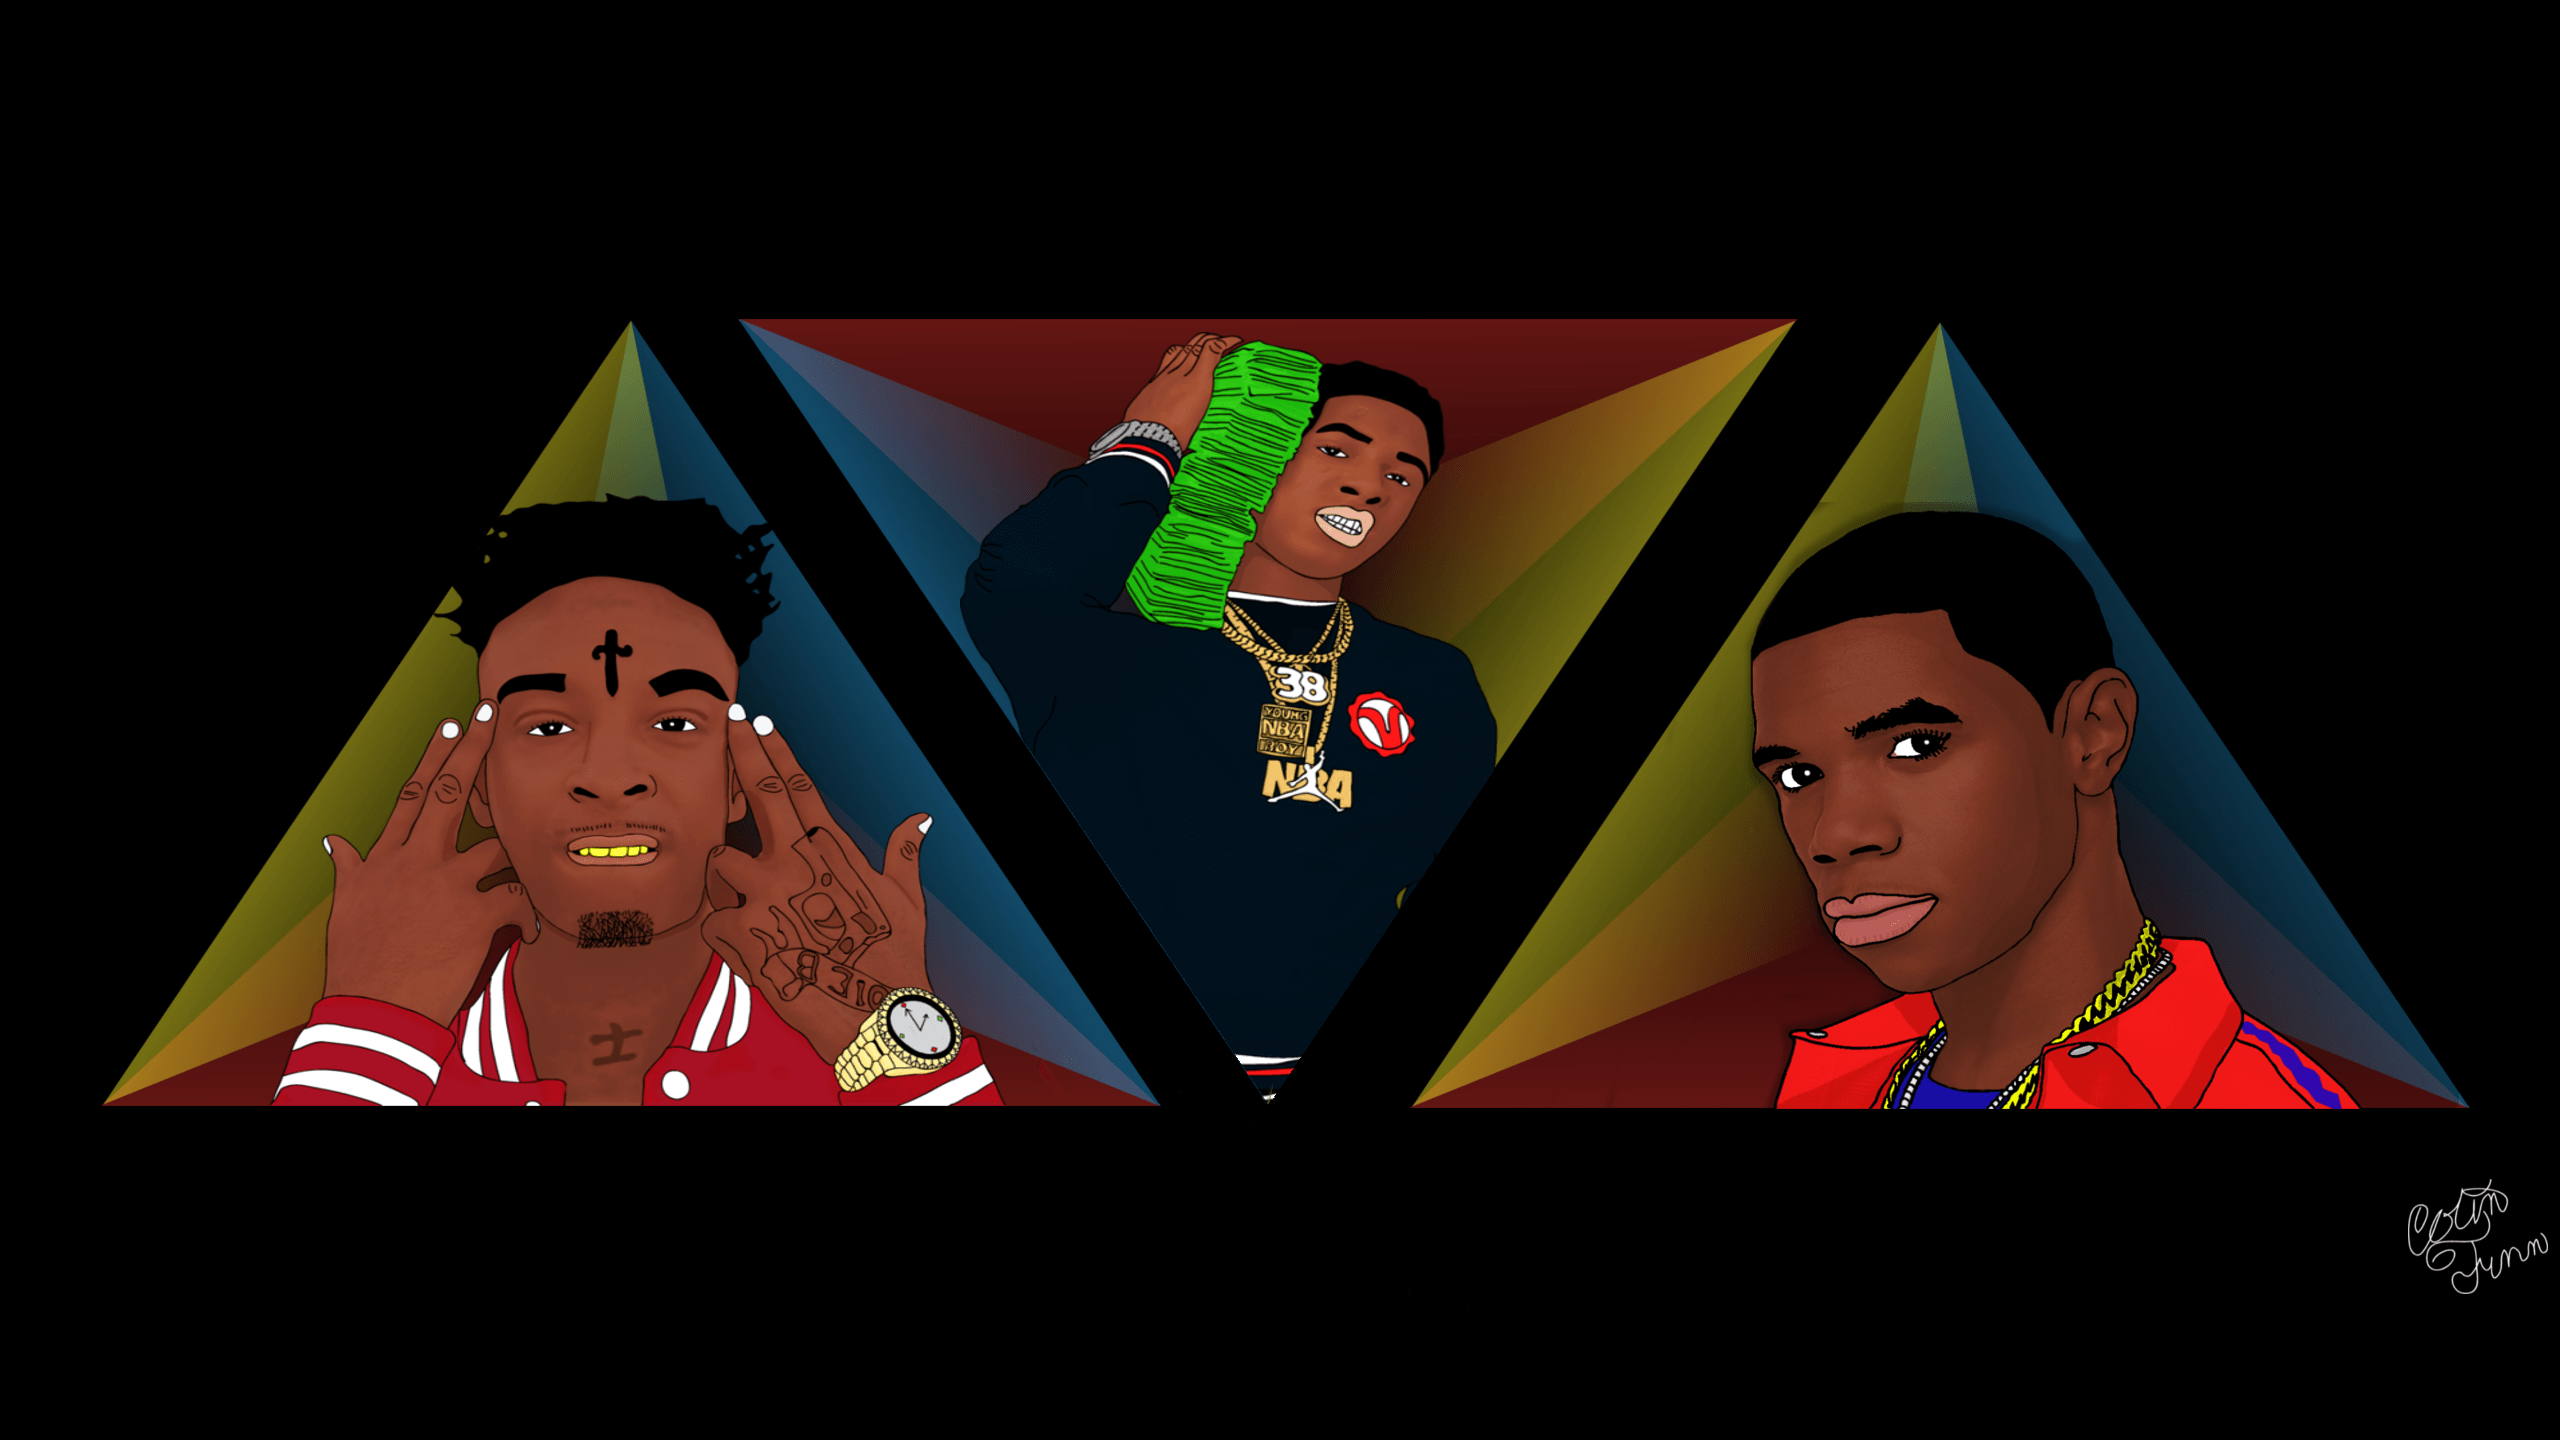 2560x1440 21 Savage, NBA YoungBoy and A Boogie Fan Art : HipHopImages